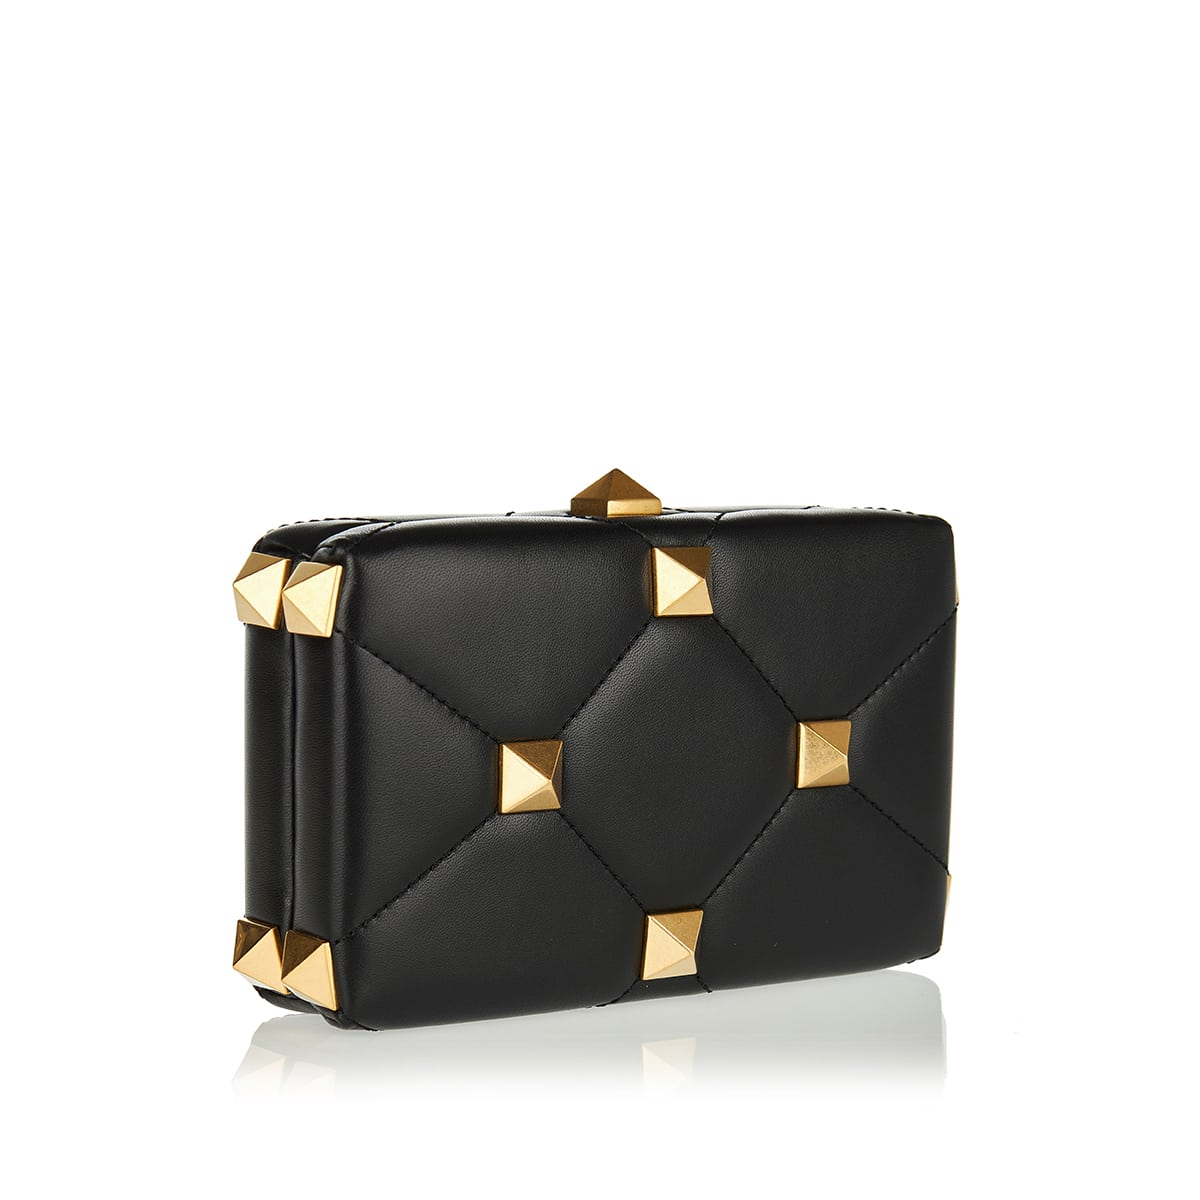 Roman Stud quilted leather clutch